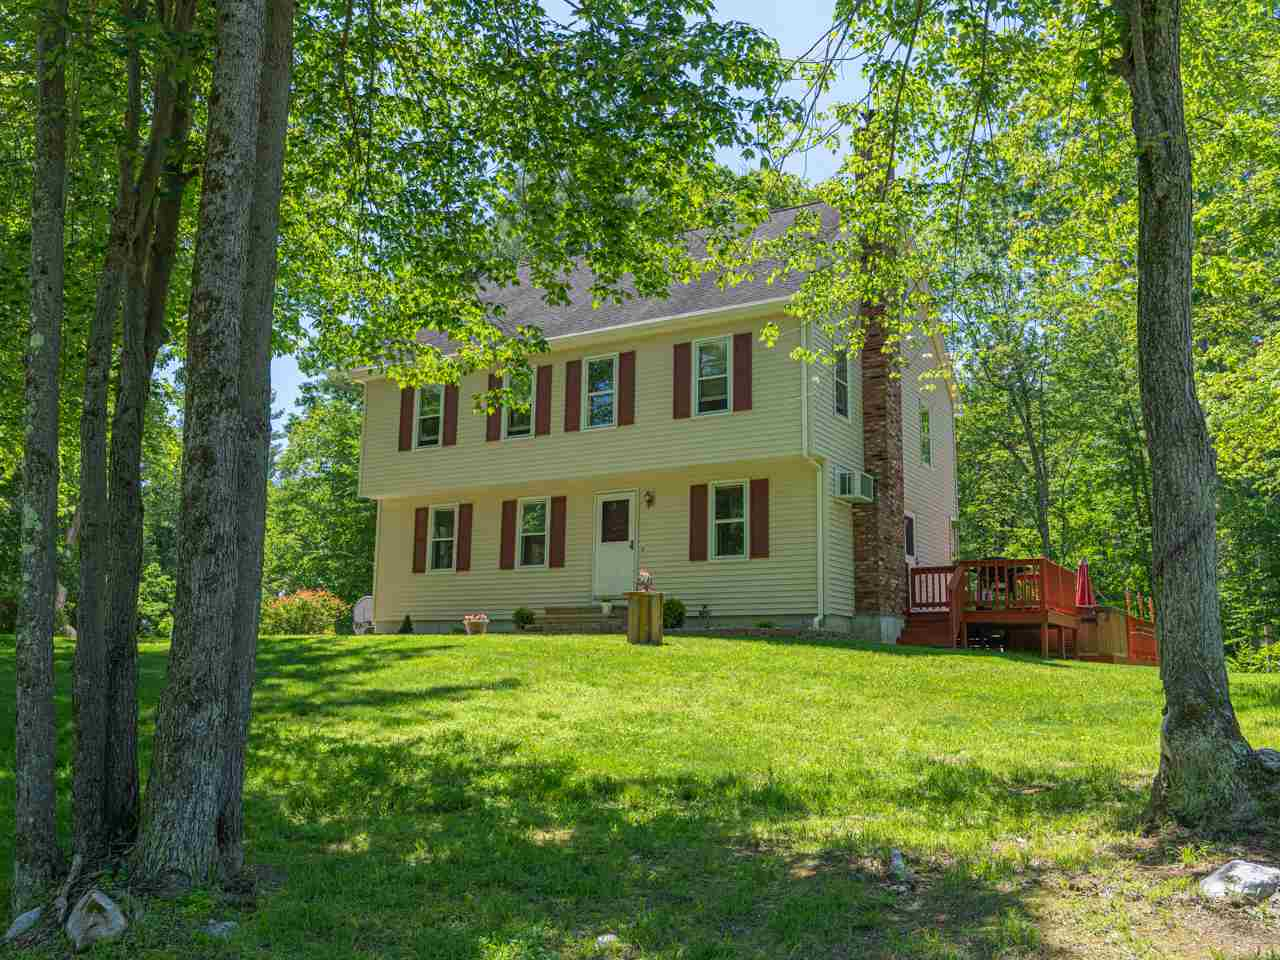 MLS 4759778: 58 Shasta Drive, Londonderry NH